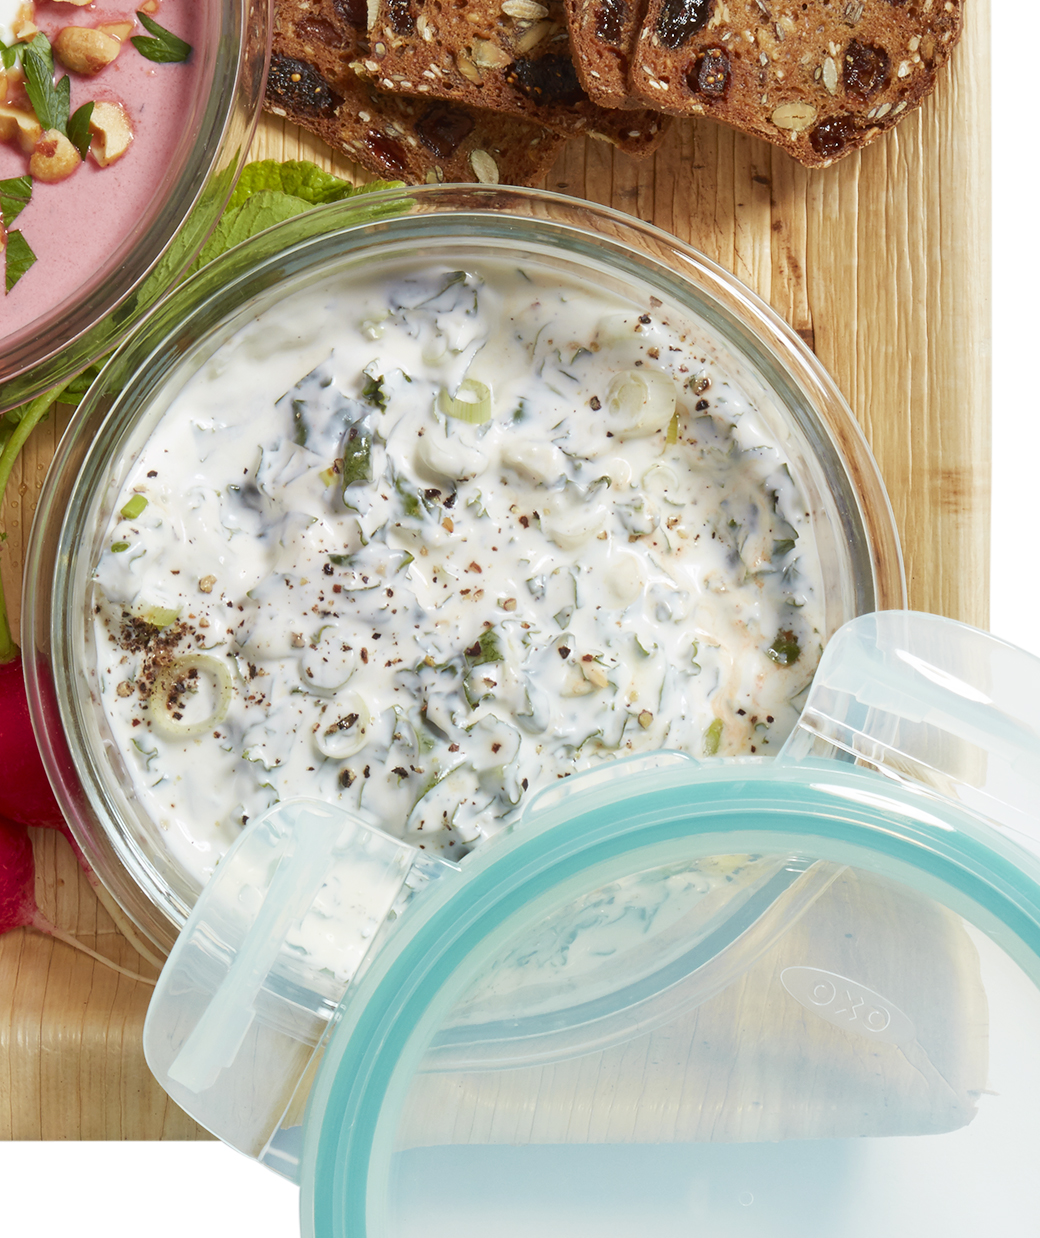 buttermilk-ranch-kale-dip